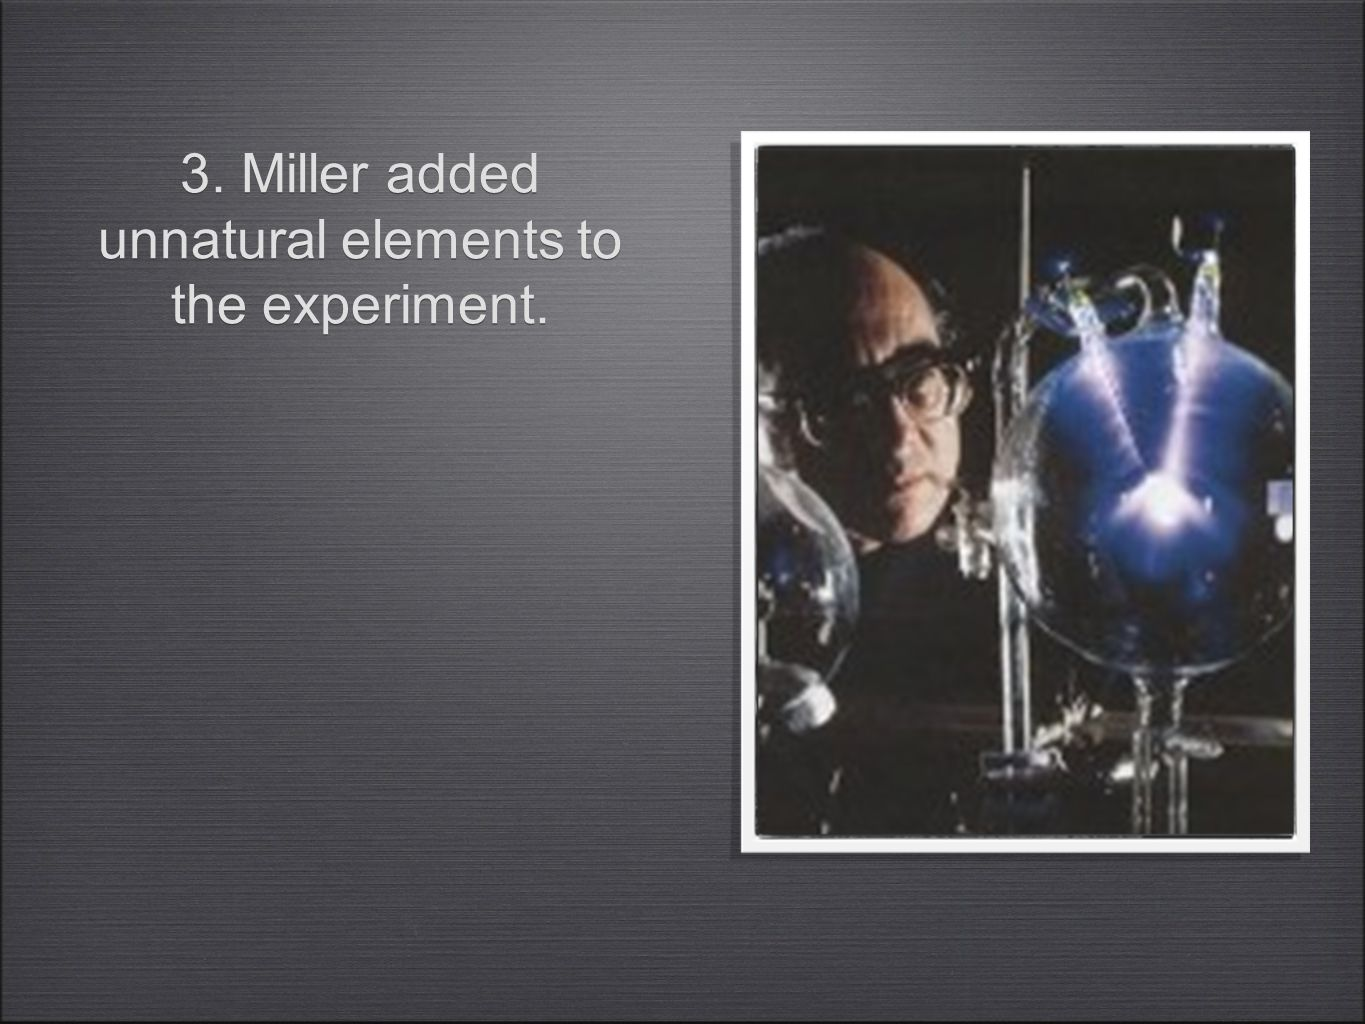 3. Miller added unnatural elements to the experiment.